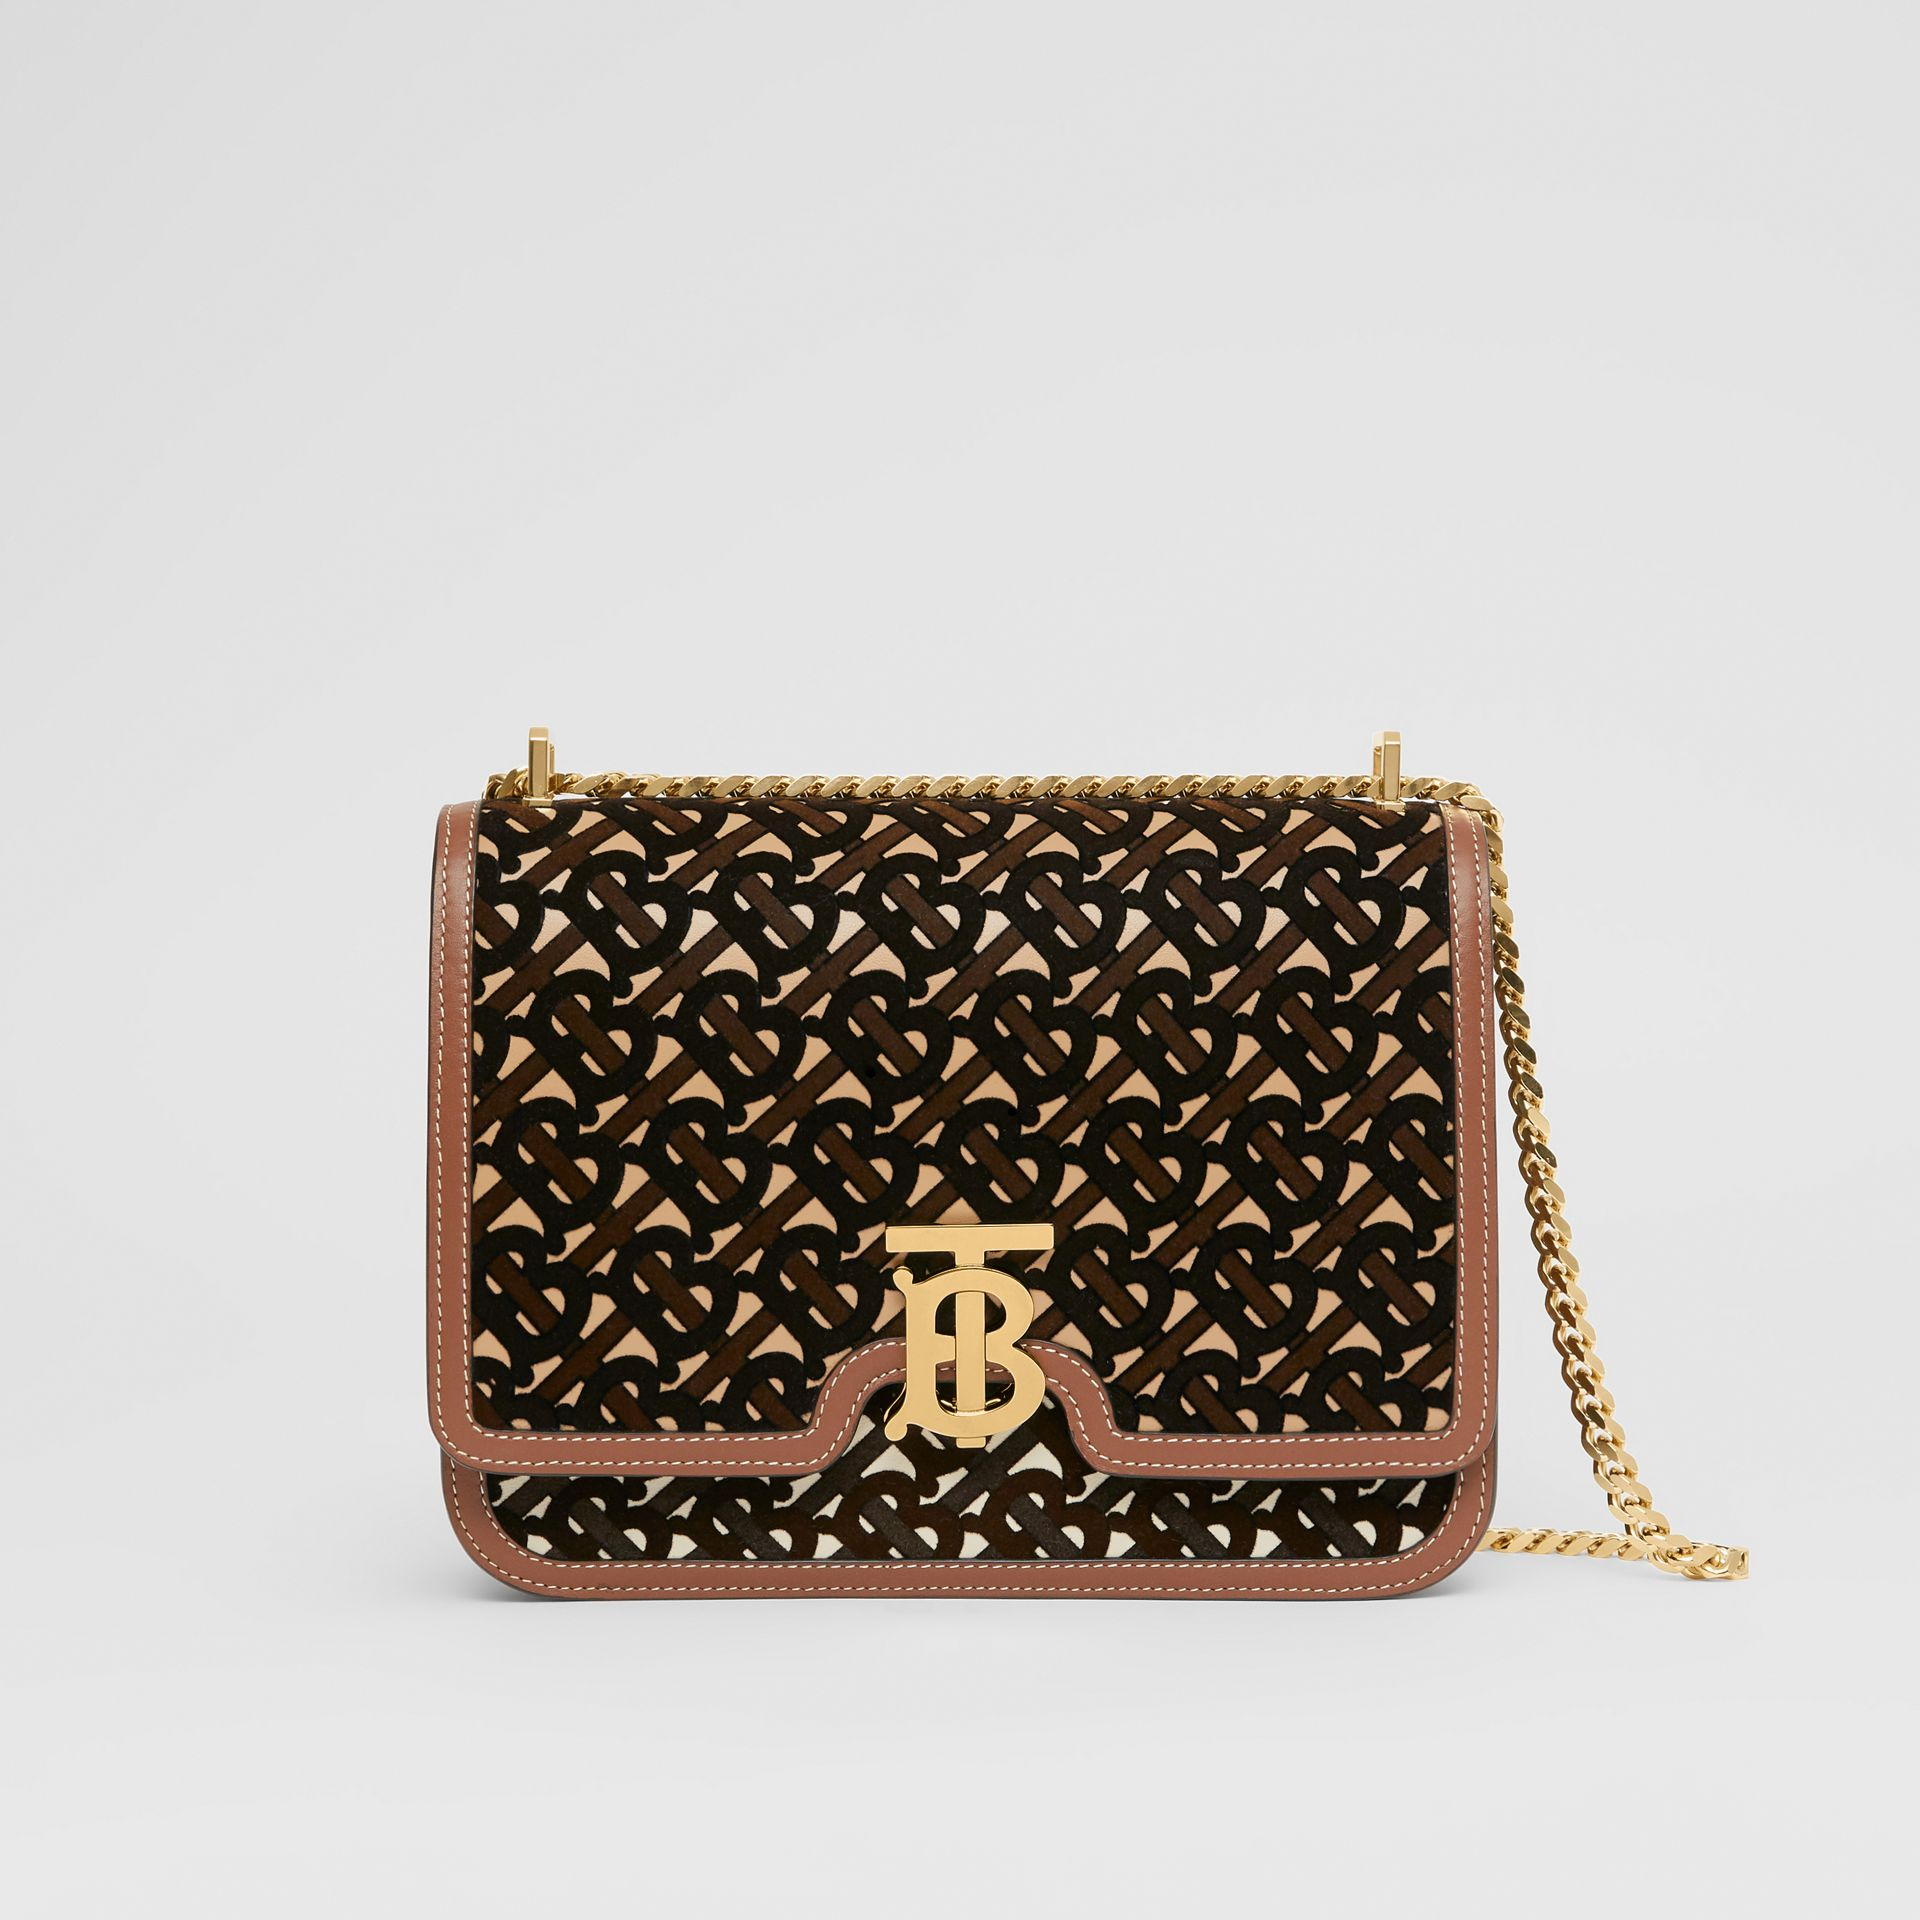 Medium Monogram Flocked Leather TB Bag in Dark Brown - Women | Burberry - gallery image 0